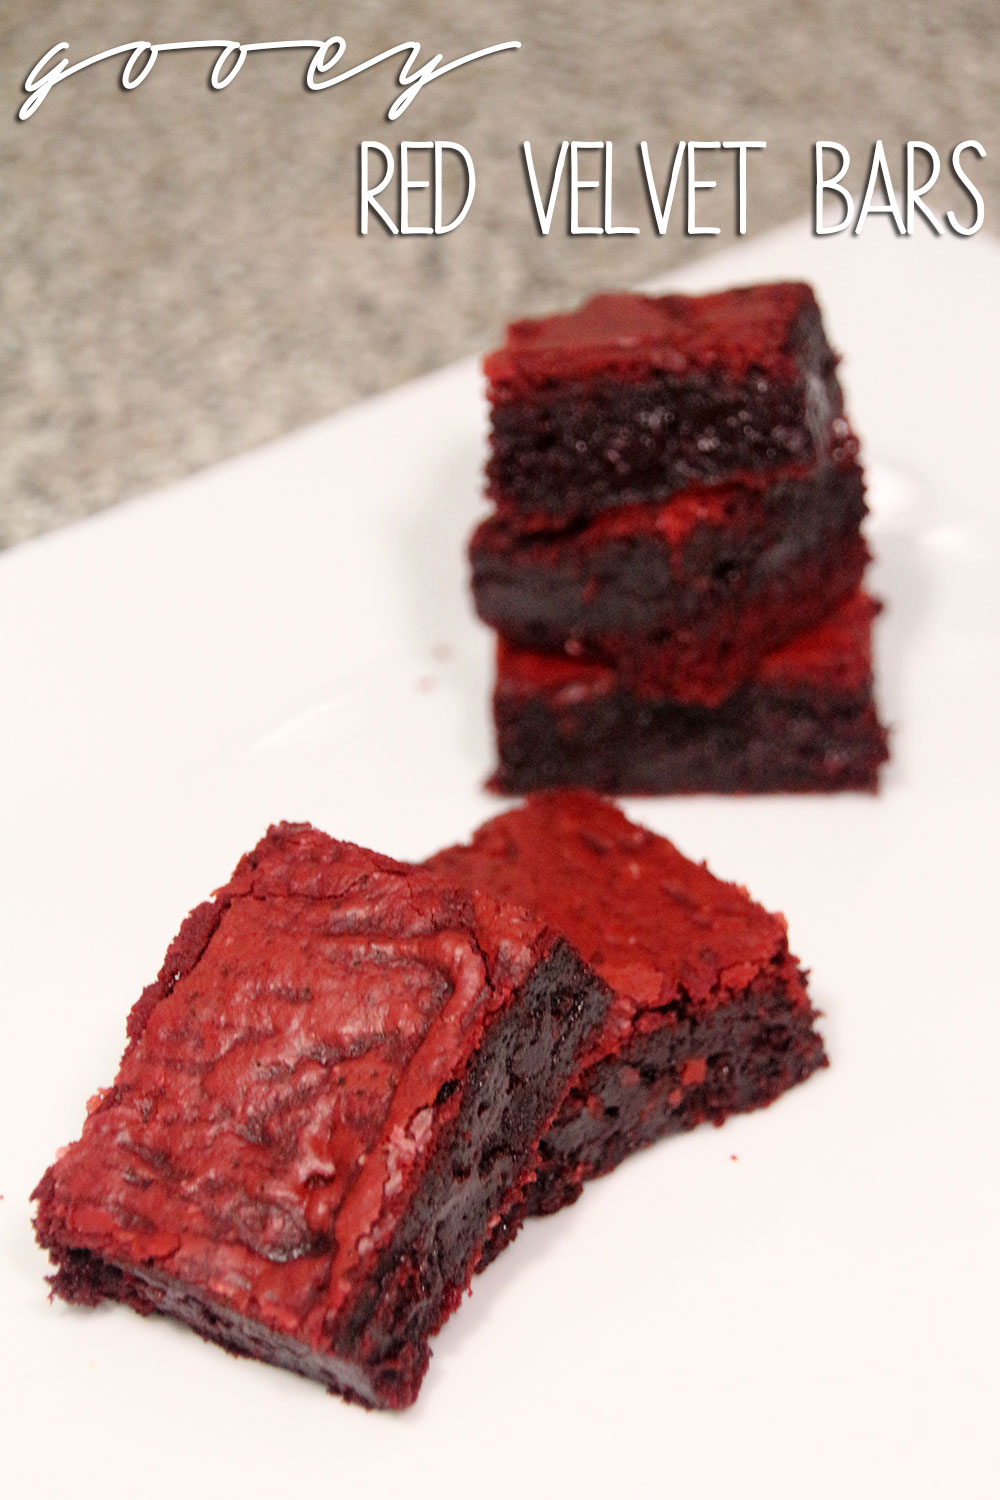 Gooey-Red-Velvet-Bars-020-text